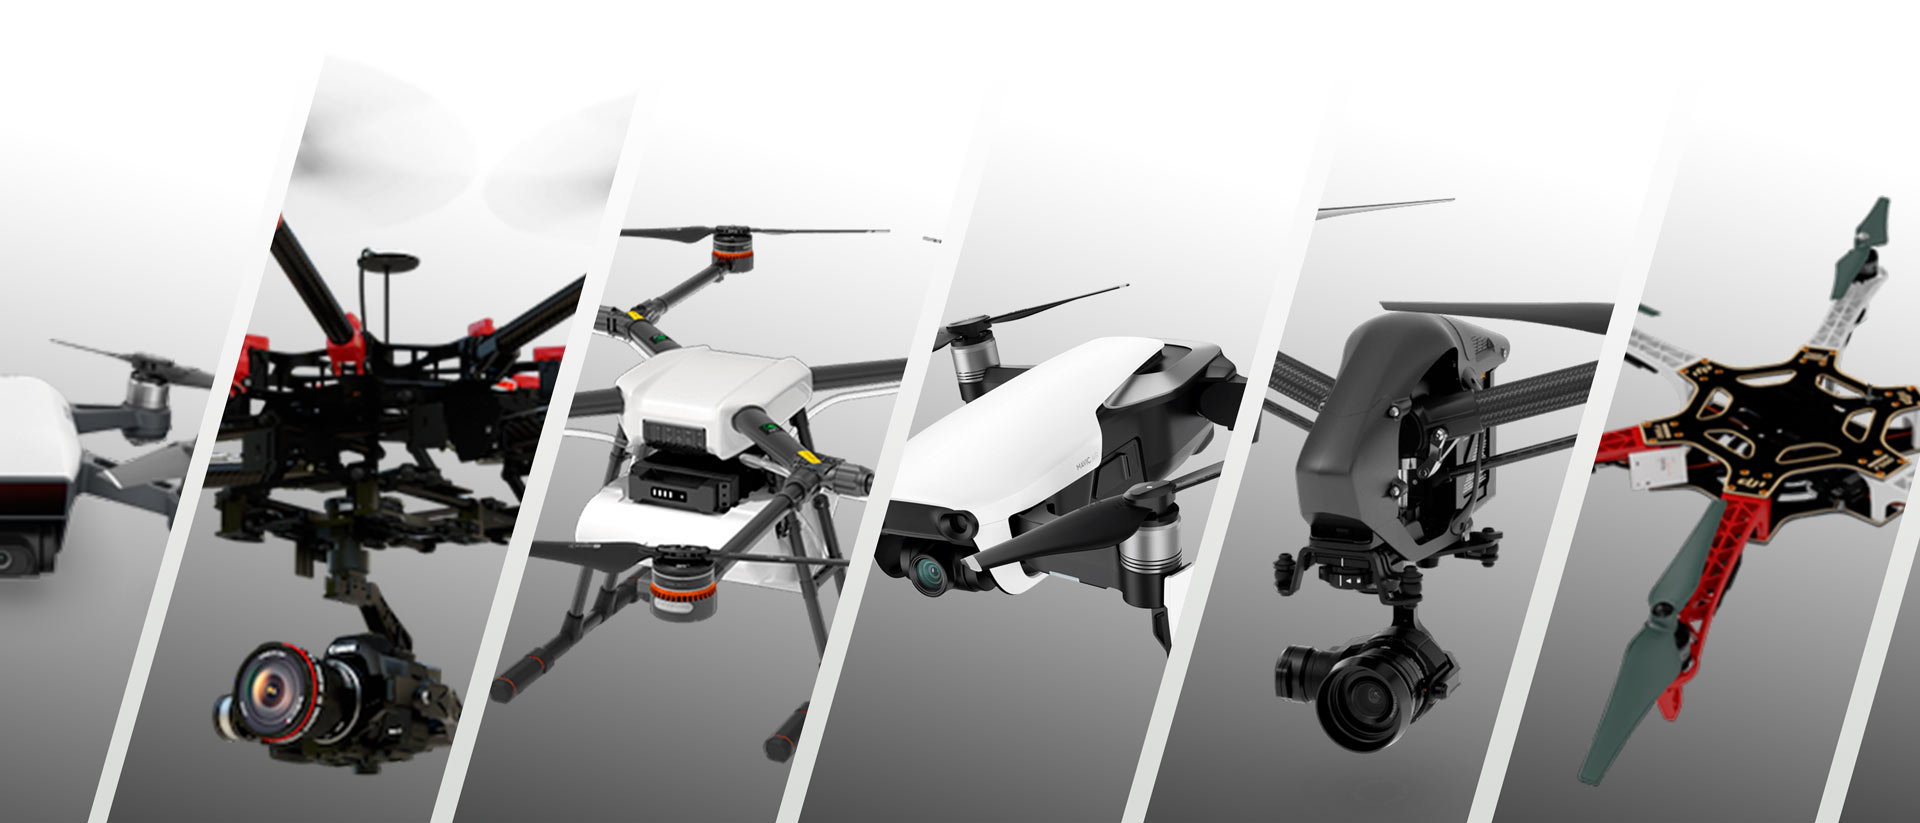 All-Drones-Globaltechgadgets